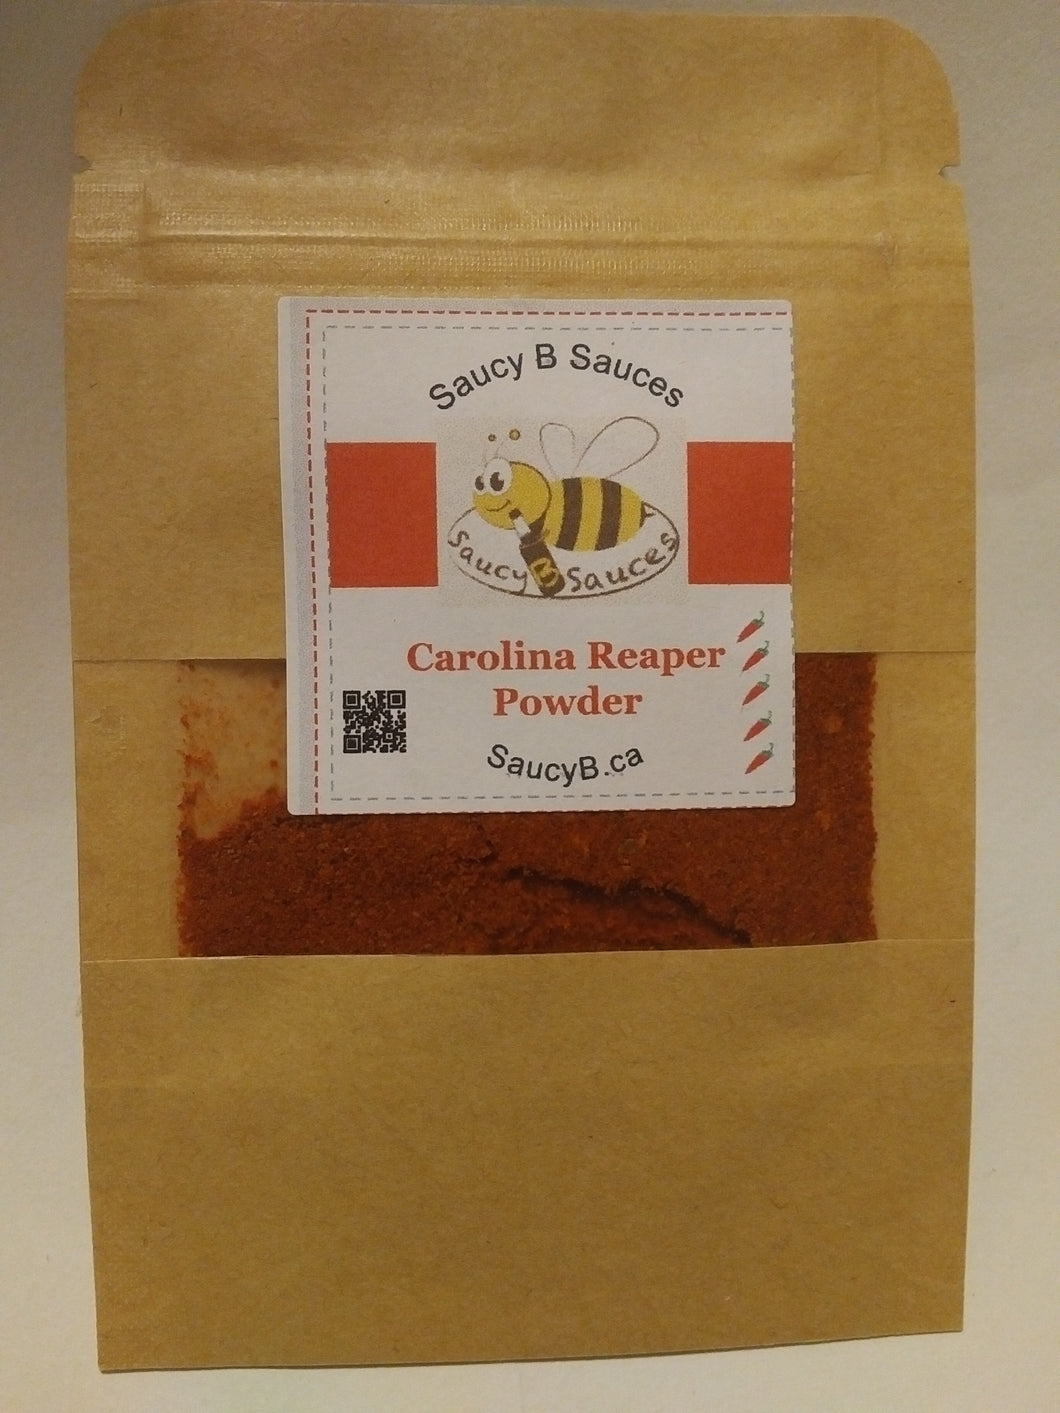 Carolina Reaper powder